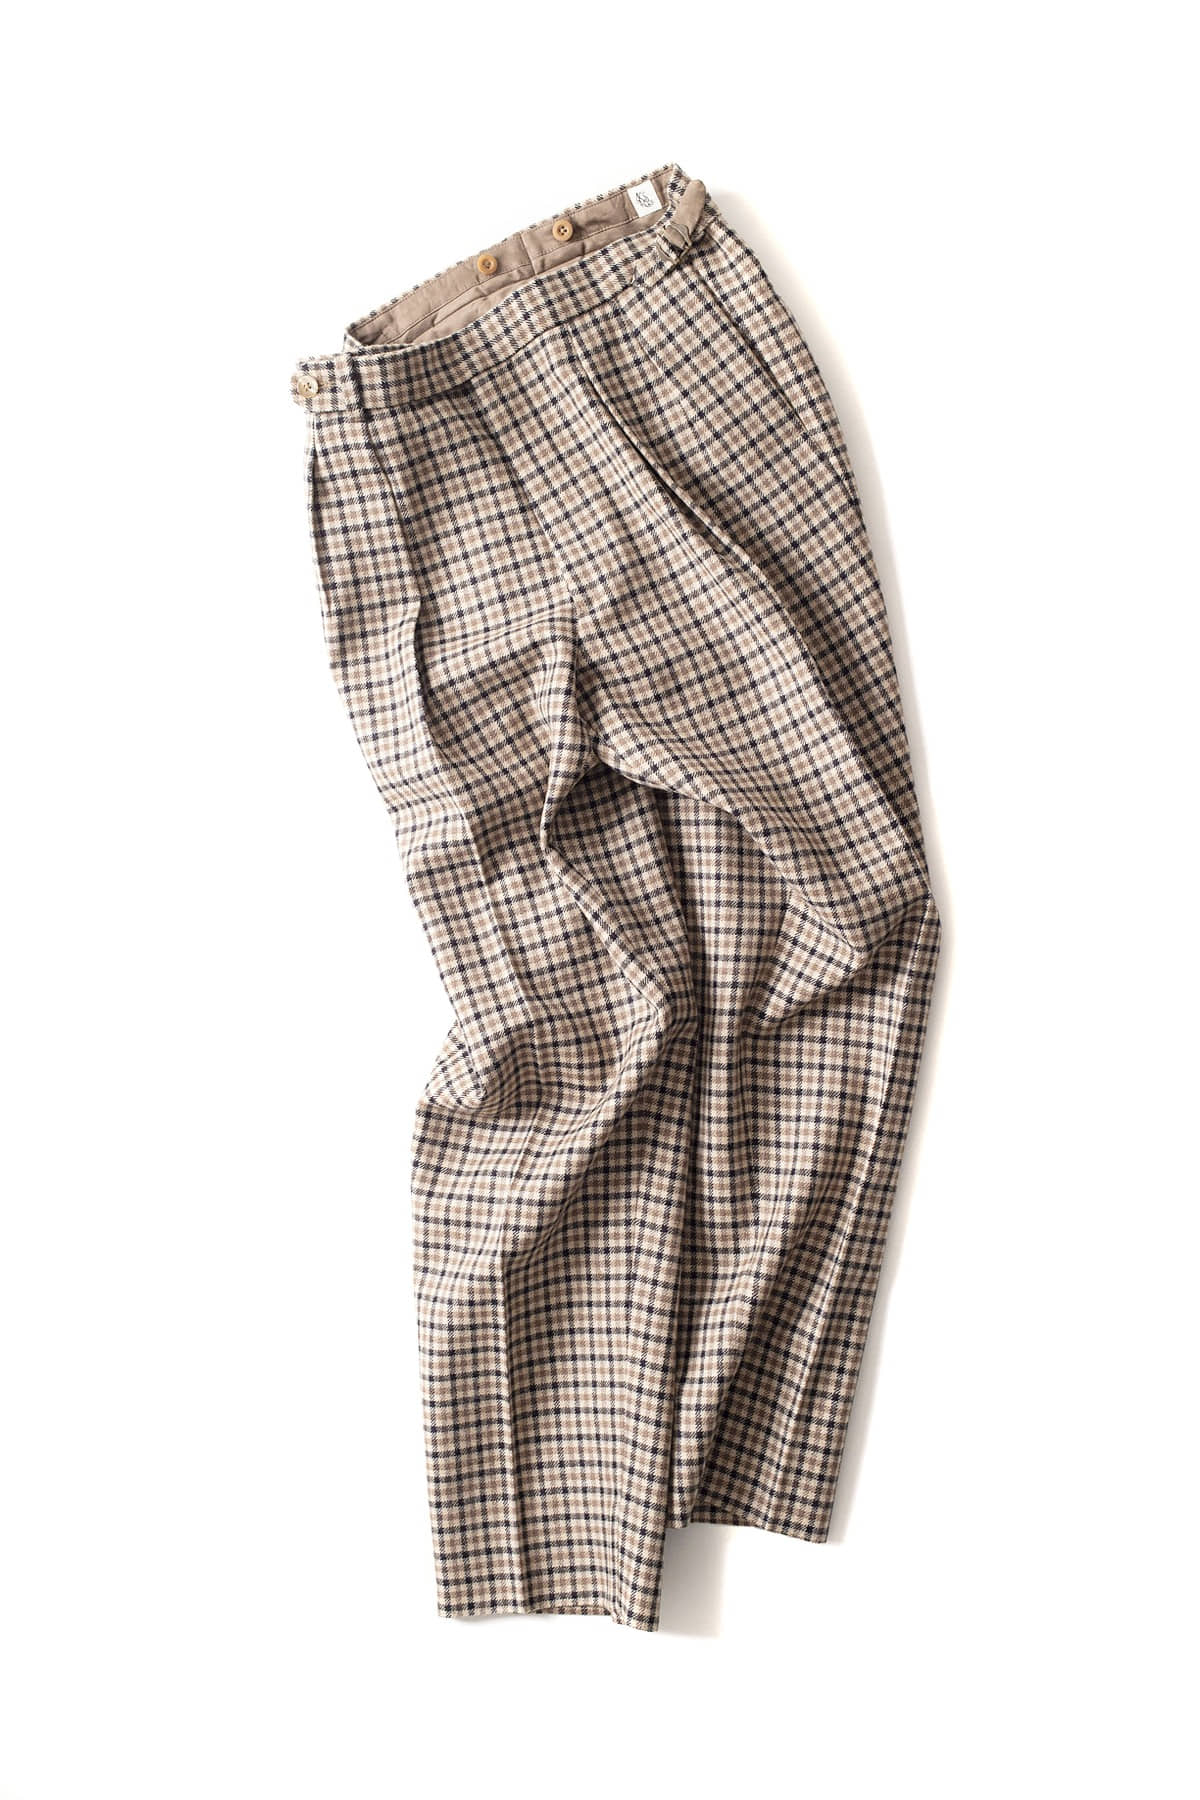 Kaptain Sunshine : Two Pleats Trousers (Brown)